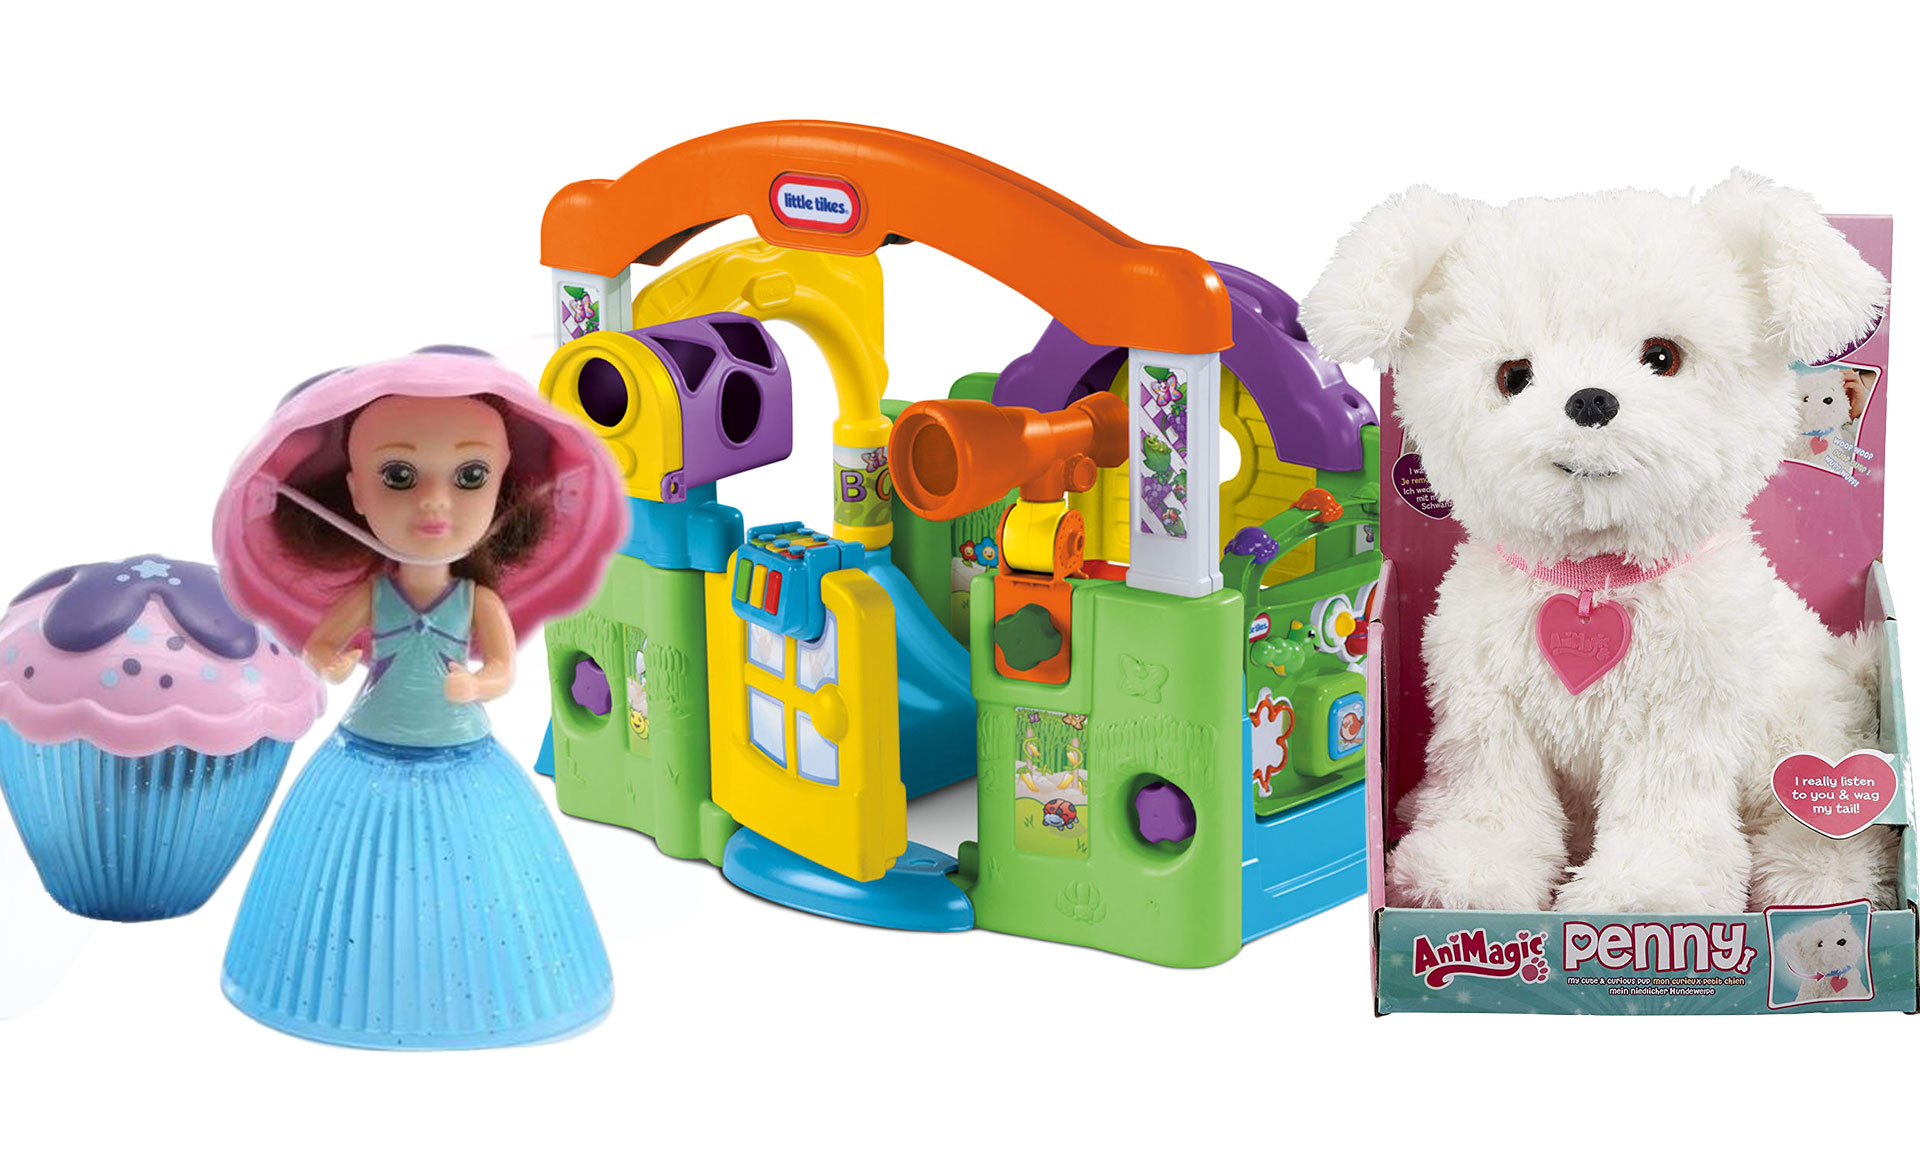 Doll Toys In Amazon Toys Sold In Argos Smyths And Amazon Recalled Over Safety